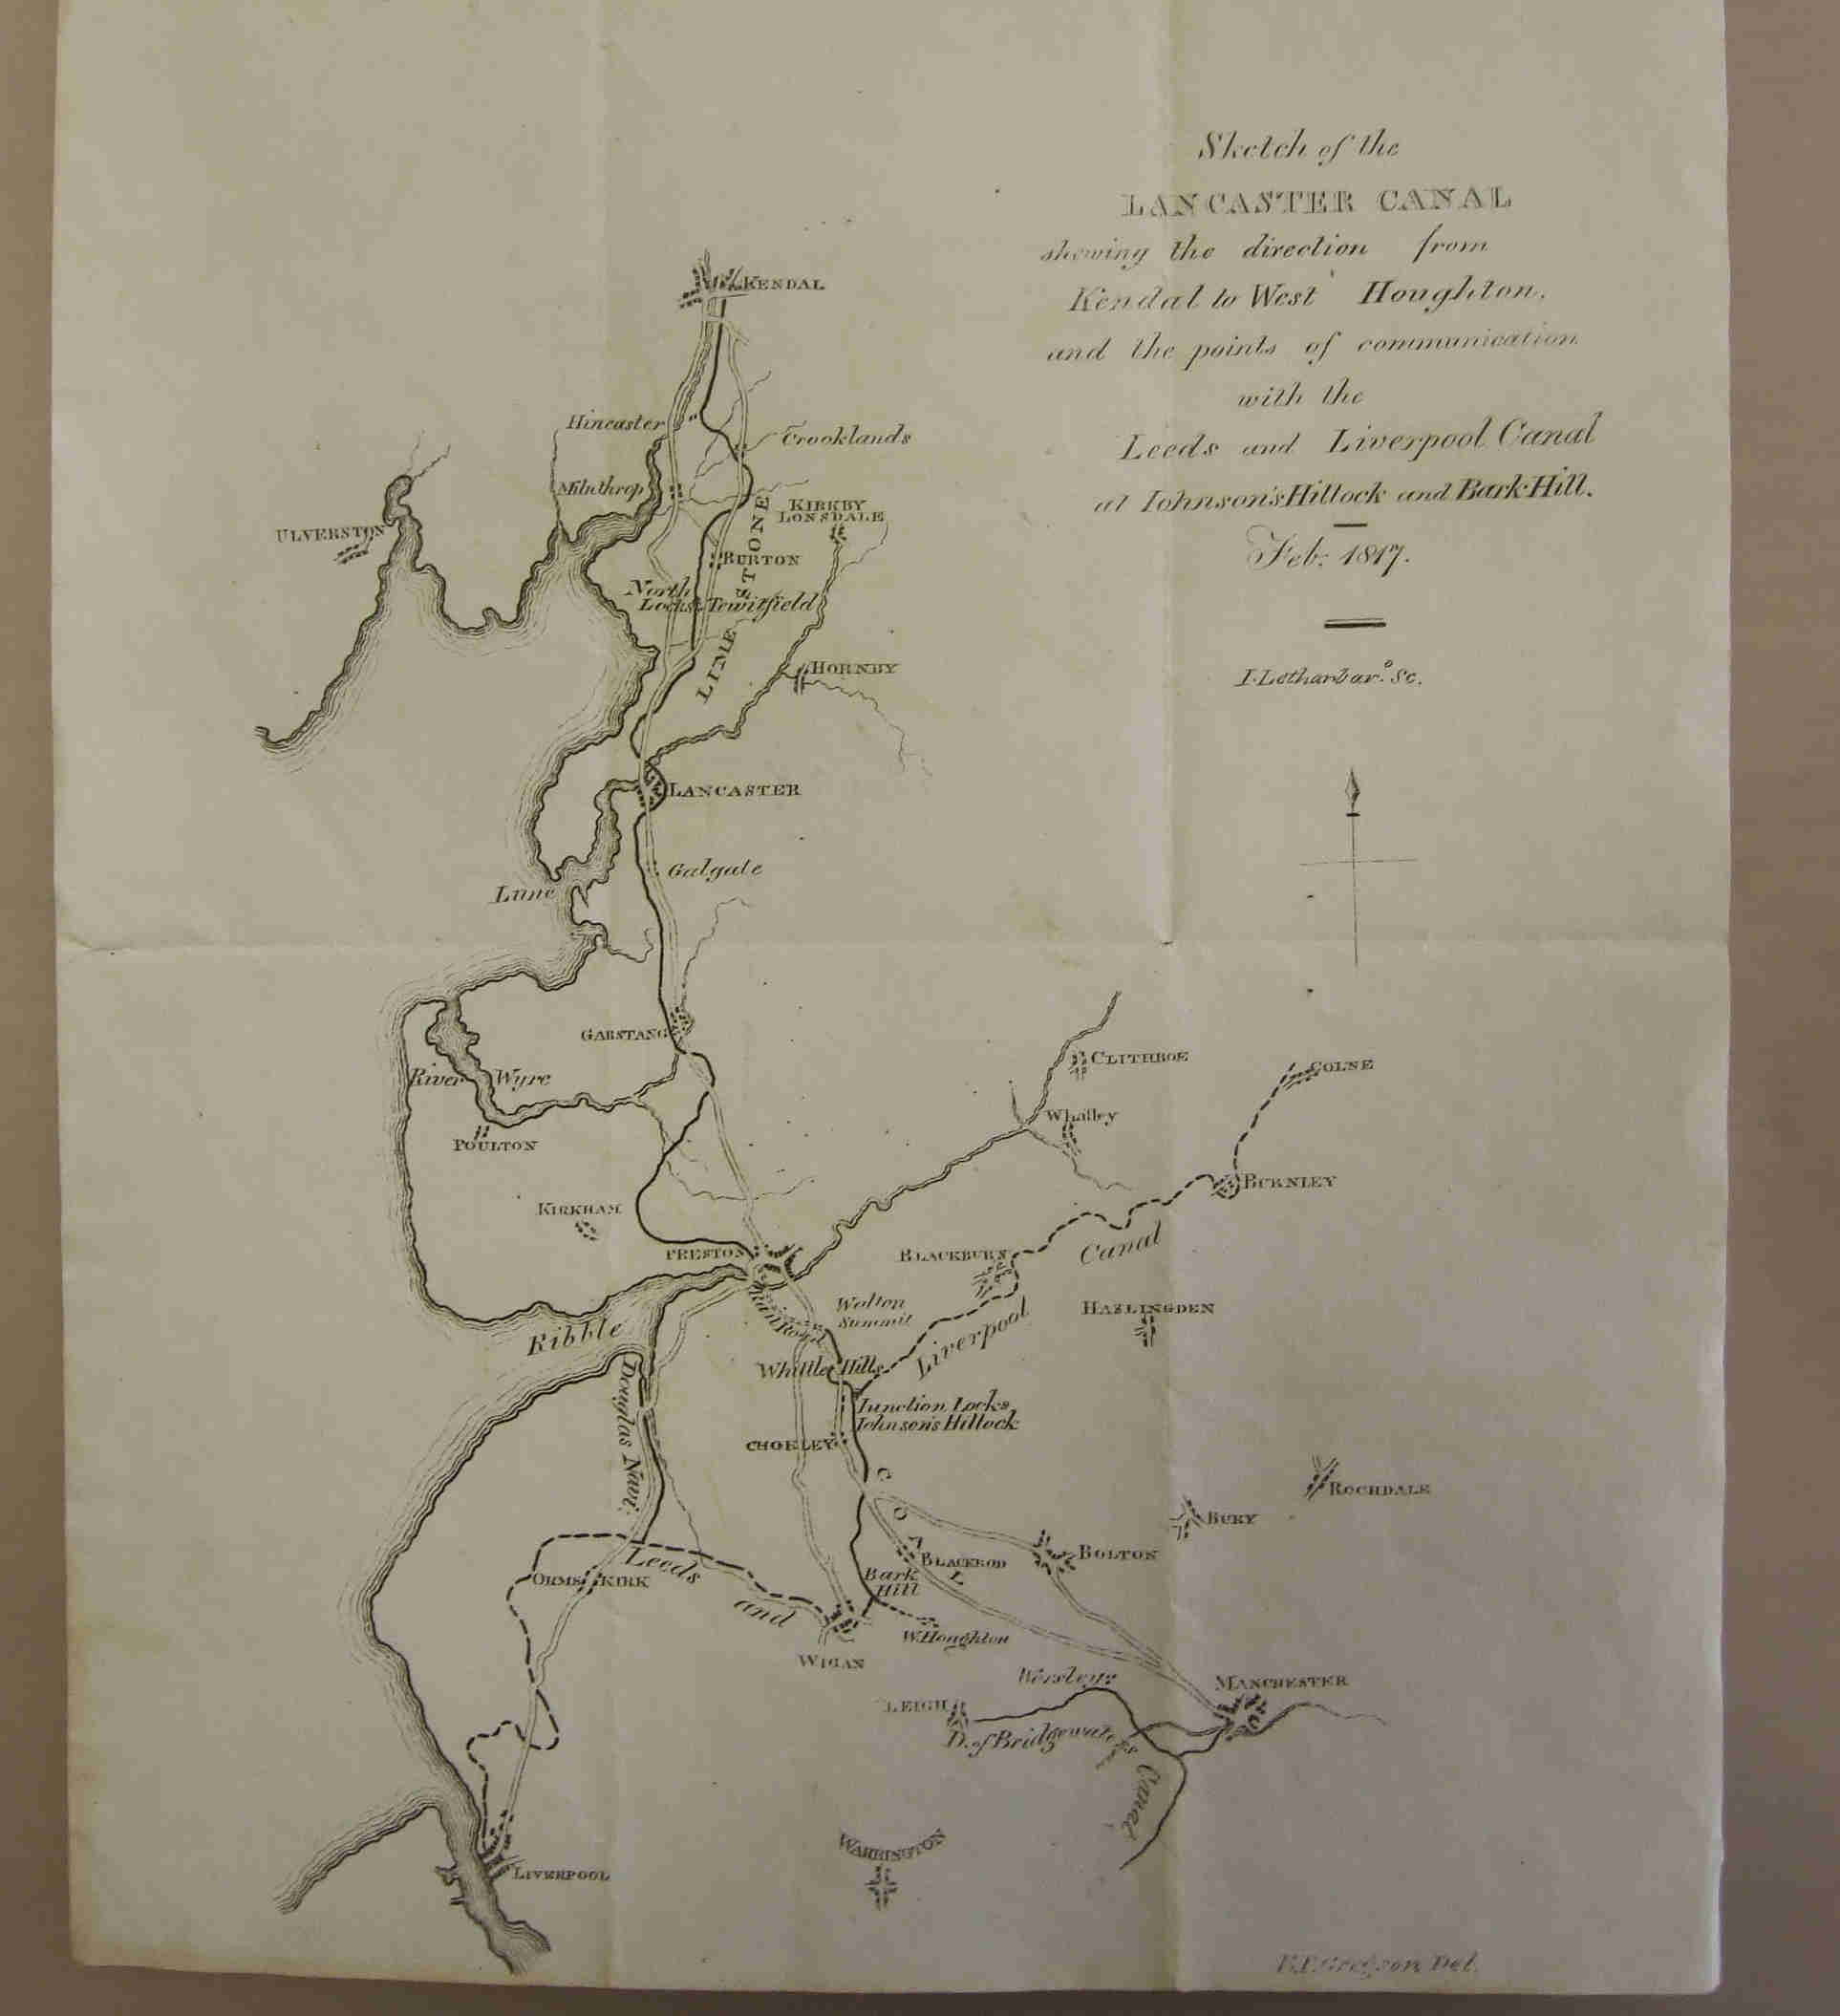 lancaster canal 1817